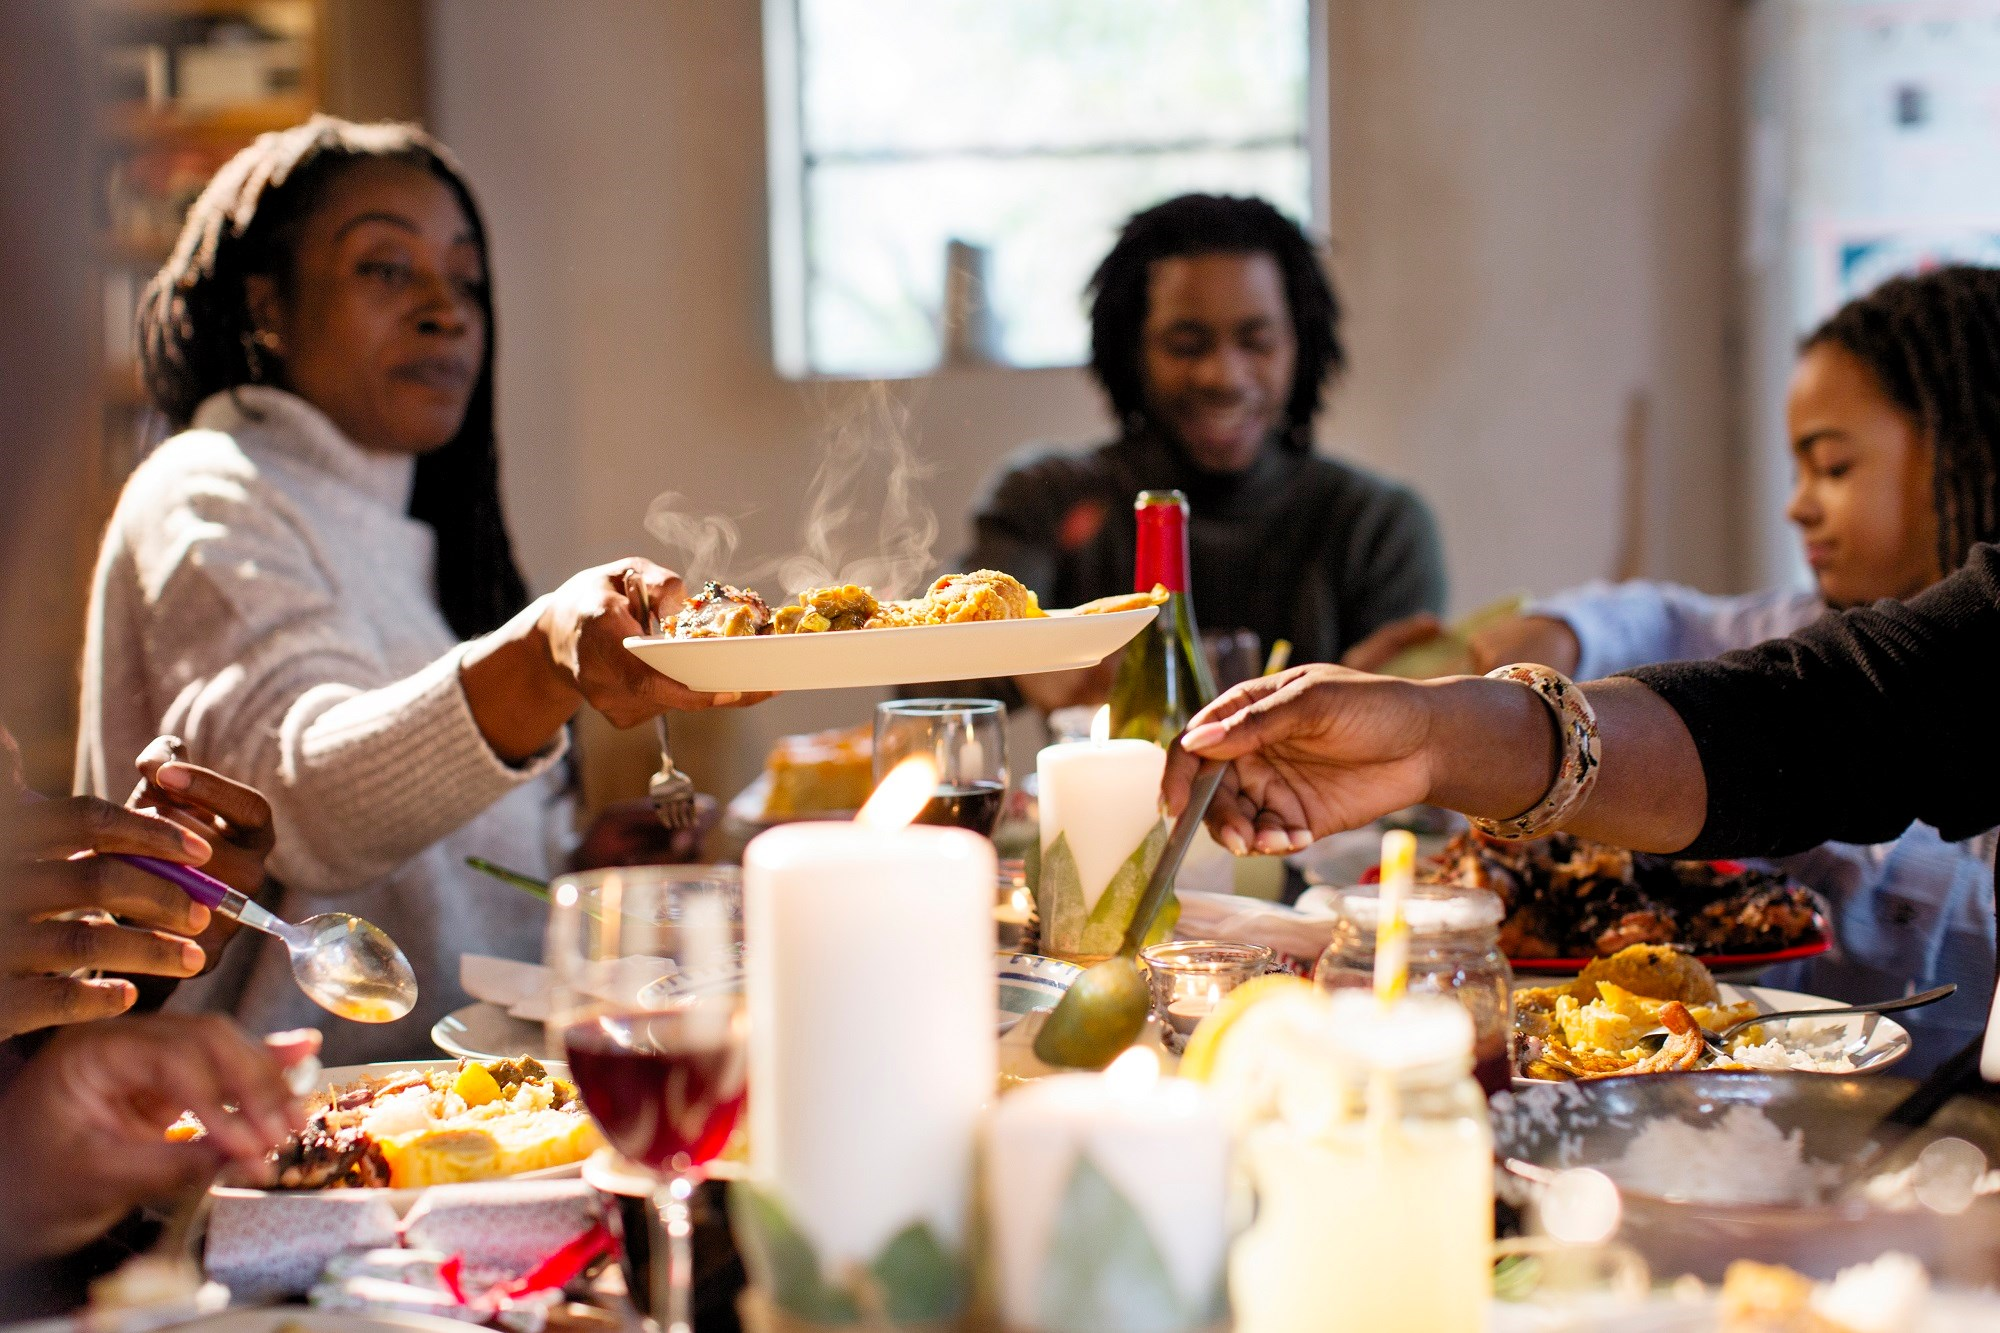 Frequent Family Dinners Linked to Higher-Quality Diets in Adolescents, Young Adults